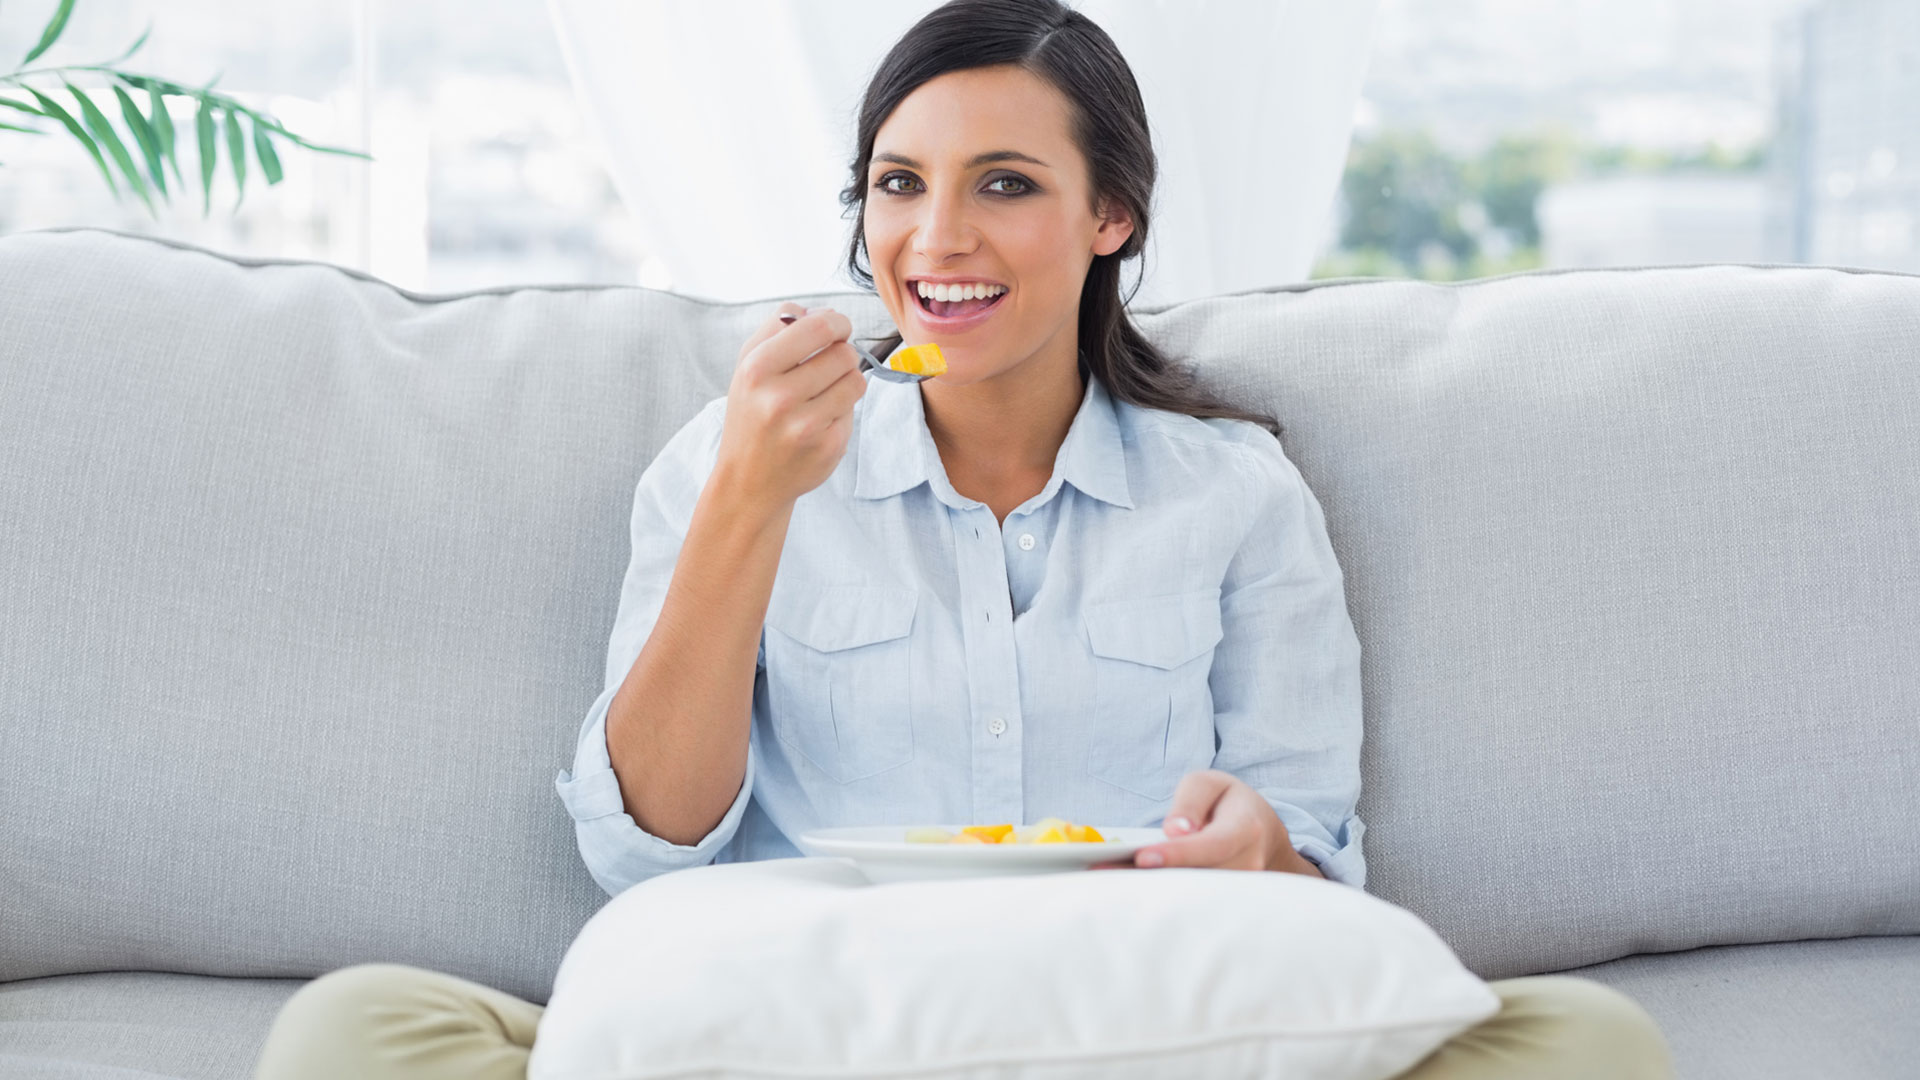 Relaxed woman eating